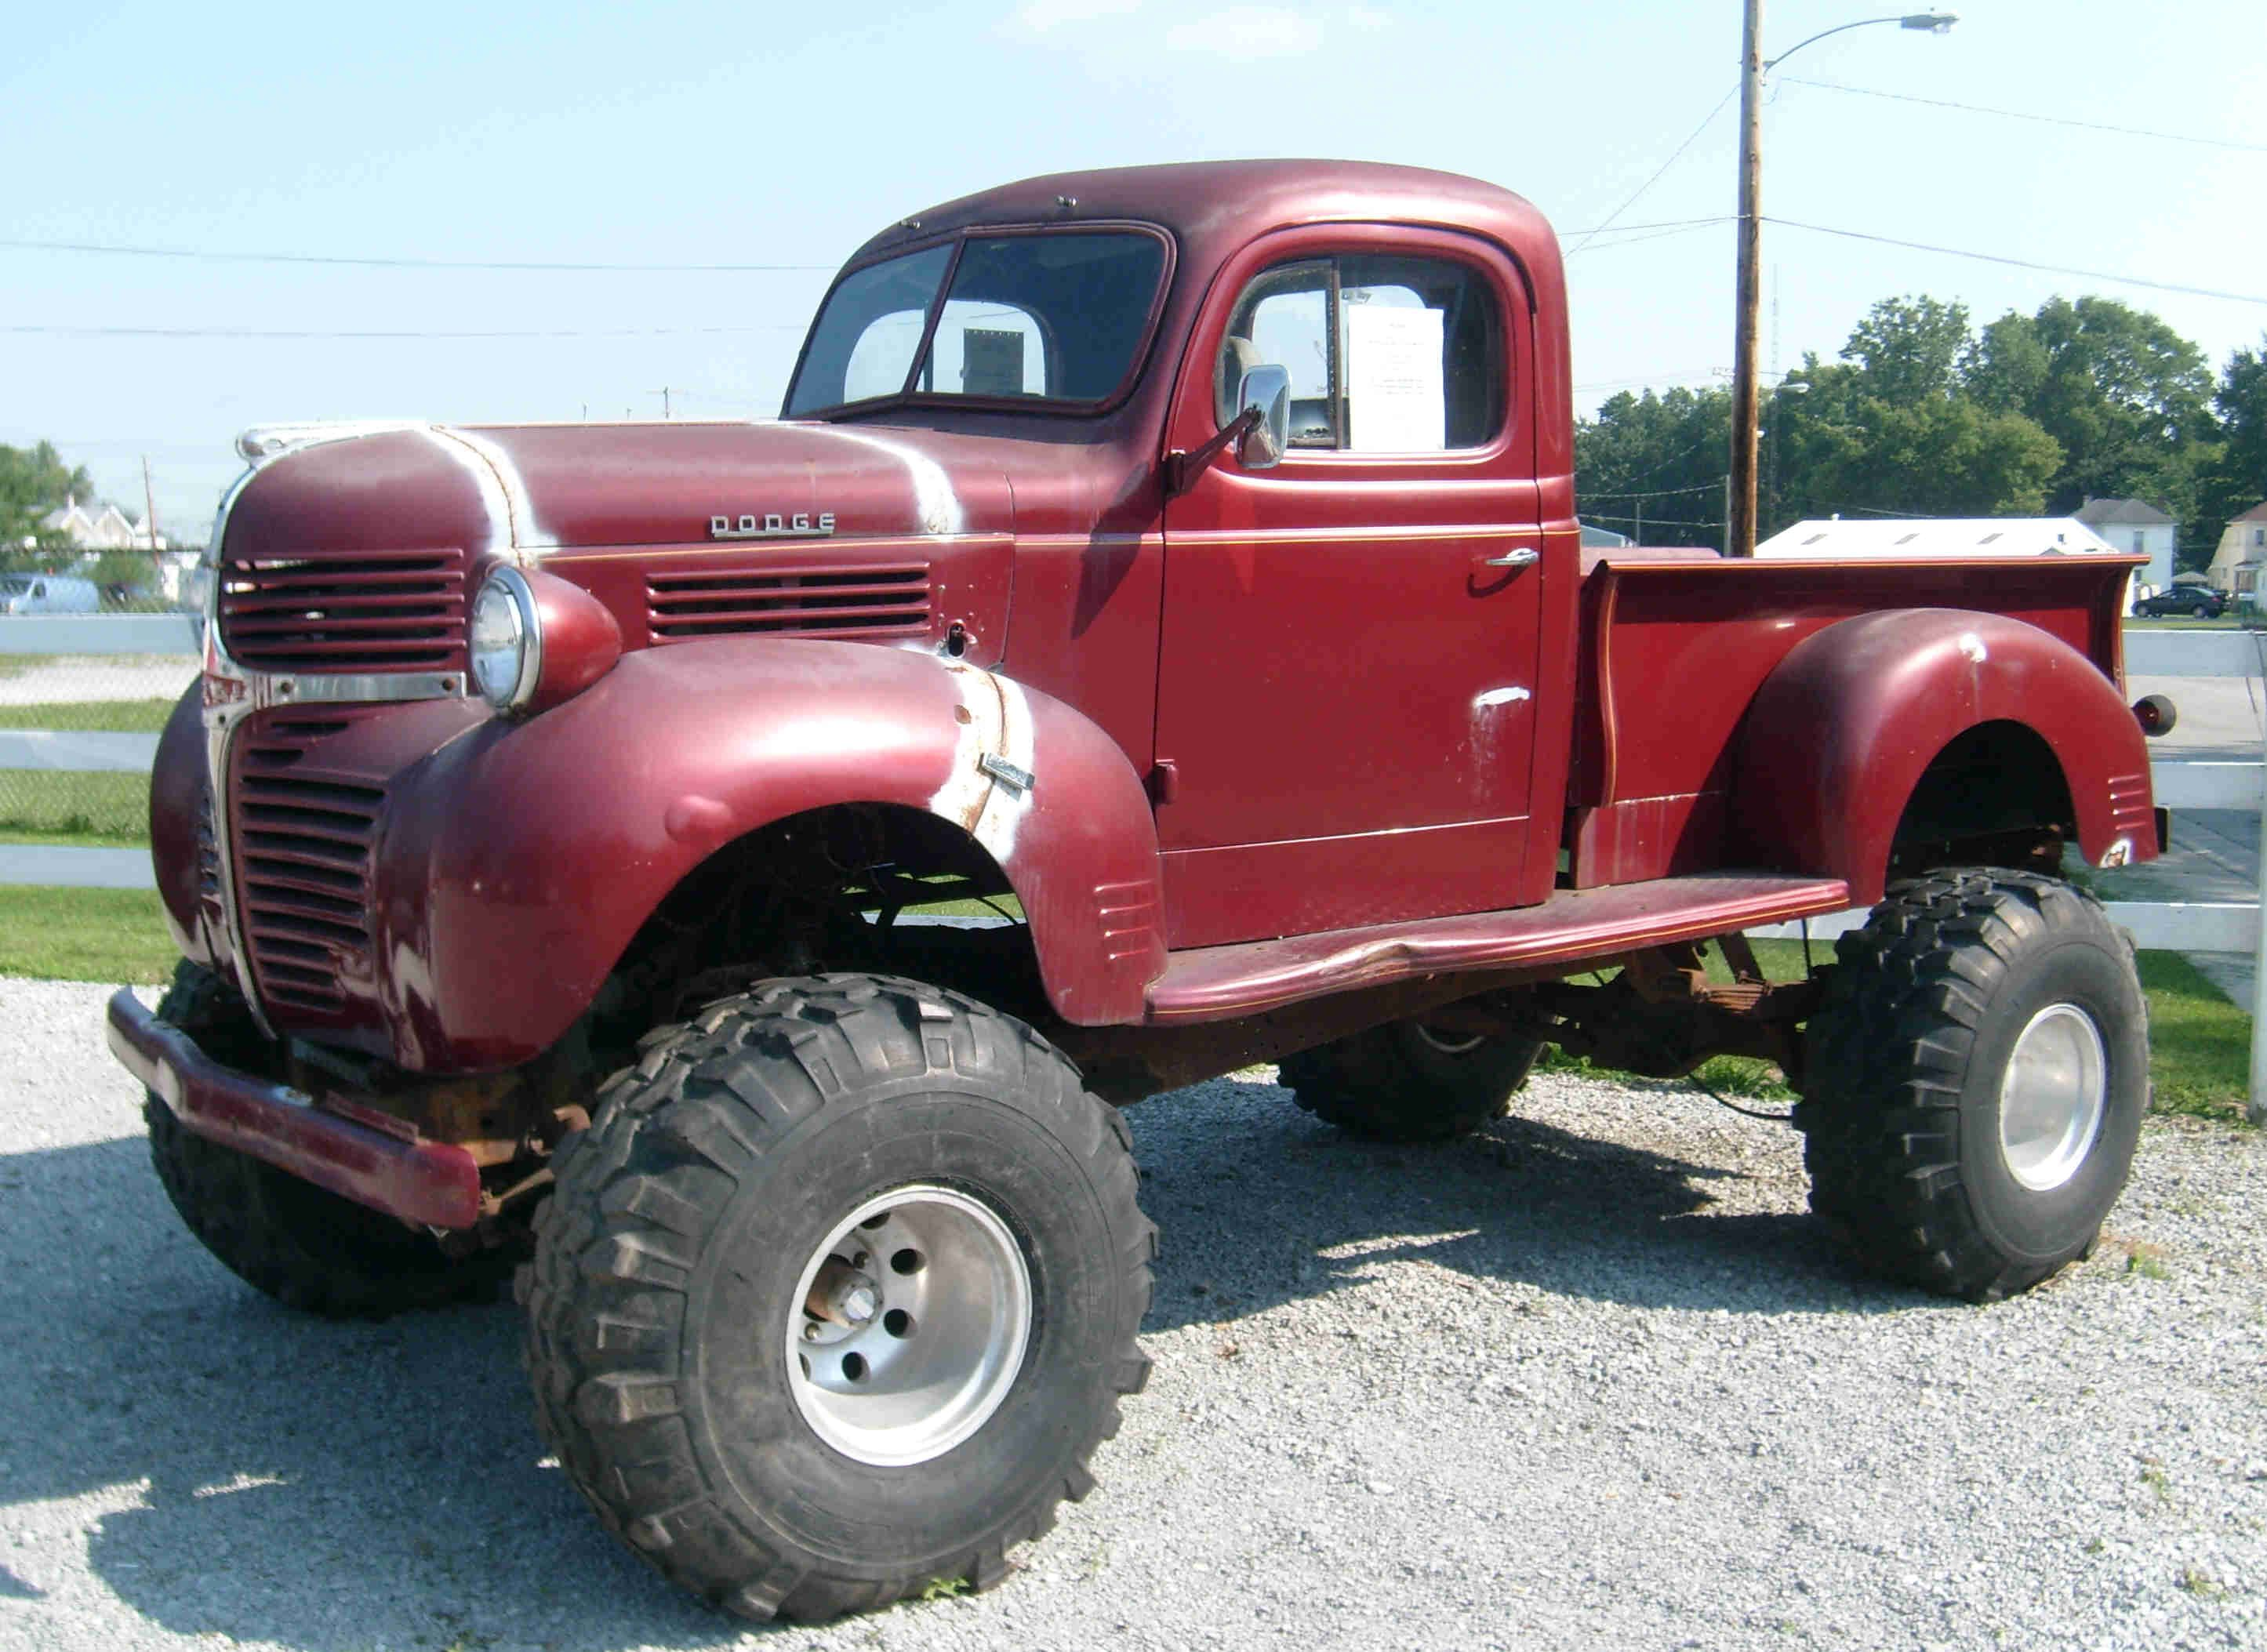 1940 Dodge Maintenance Of Old Vehicles The Material For New Cogs